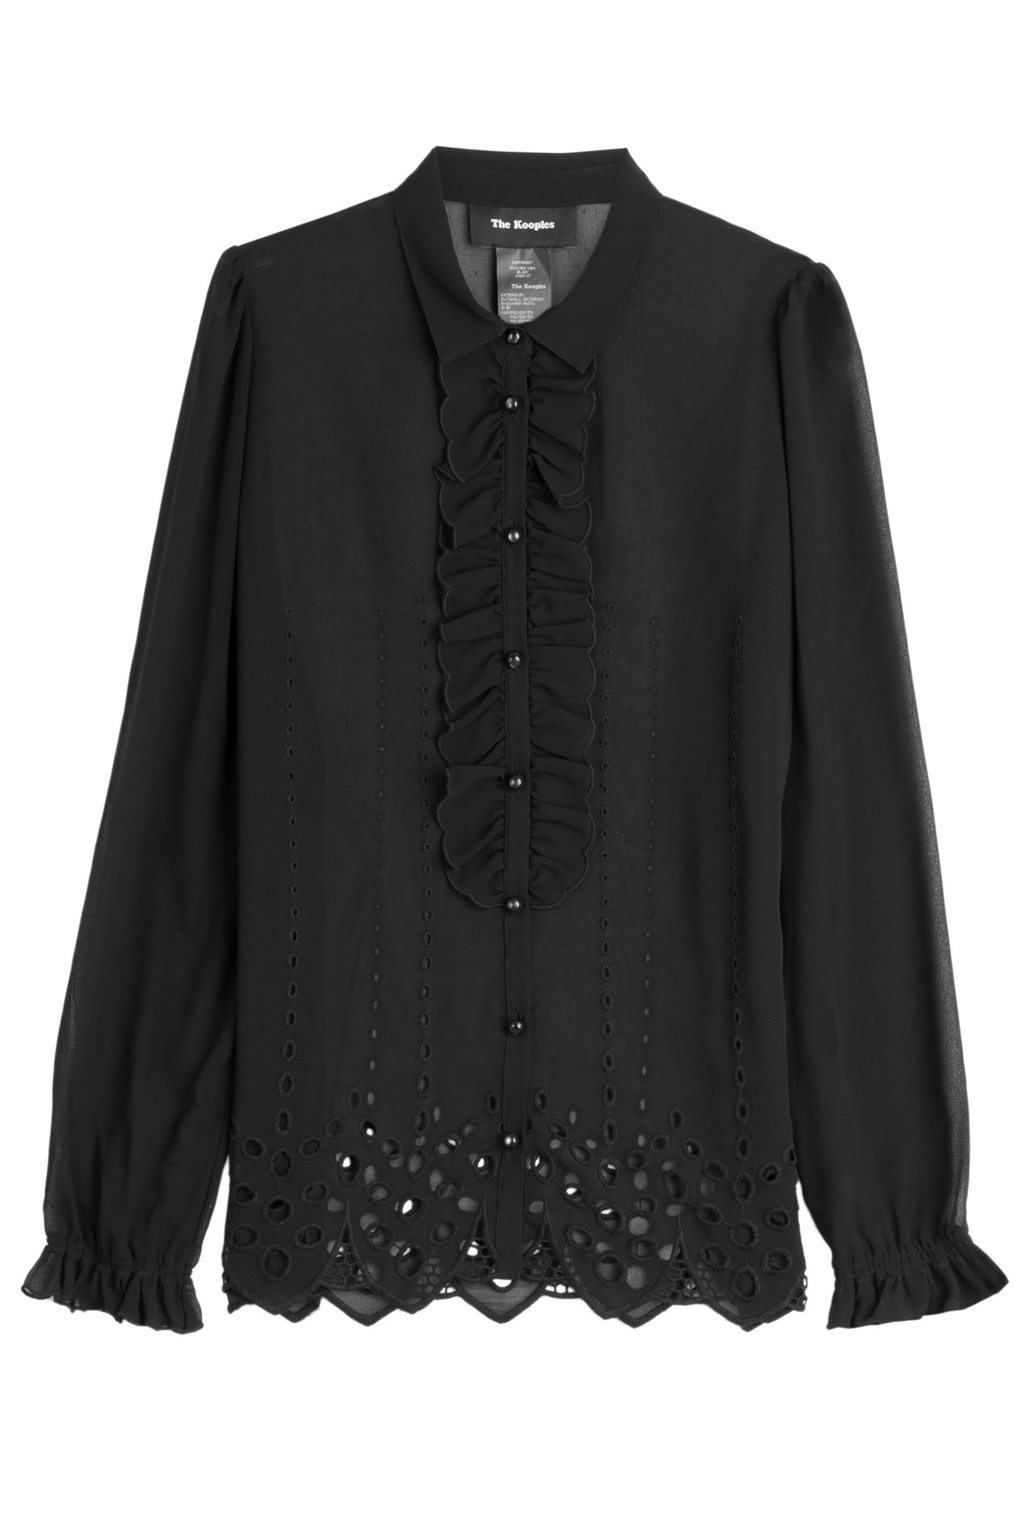 Blouse With Broderie Anglaise - neckline: shirt collar/peter pan/zip with opening; pattern: plain; style: shirt; predominant colour: black; occasions: casual; length: standard; fibres: polyester/polyamide - 100%; fit: body skimming; sleeve length: long sleeve; sleeve style: standard; texture group: sheer fabrics/chiffon/organza etc.; pattern type: fabric; season: s/s 2016; wardrobe: basic